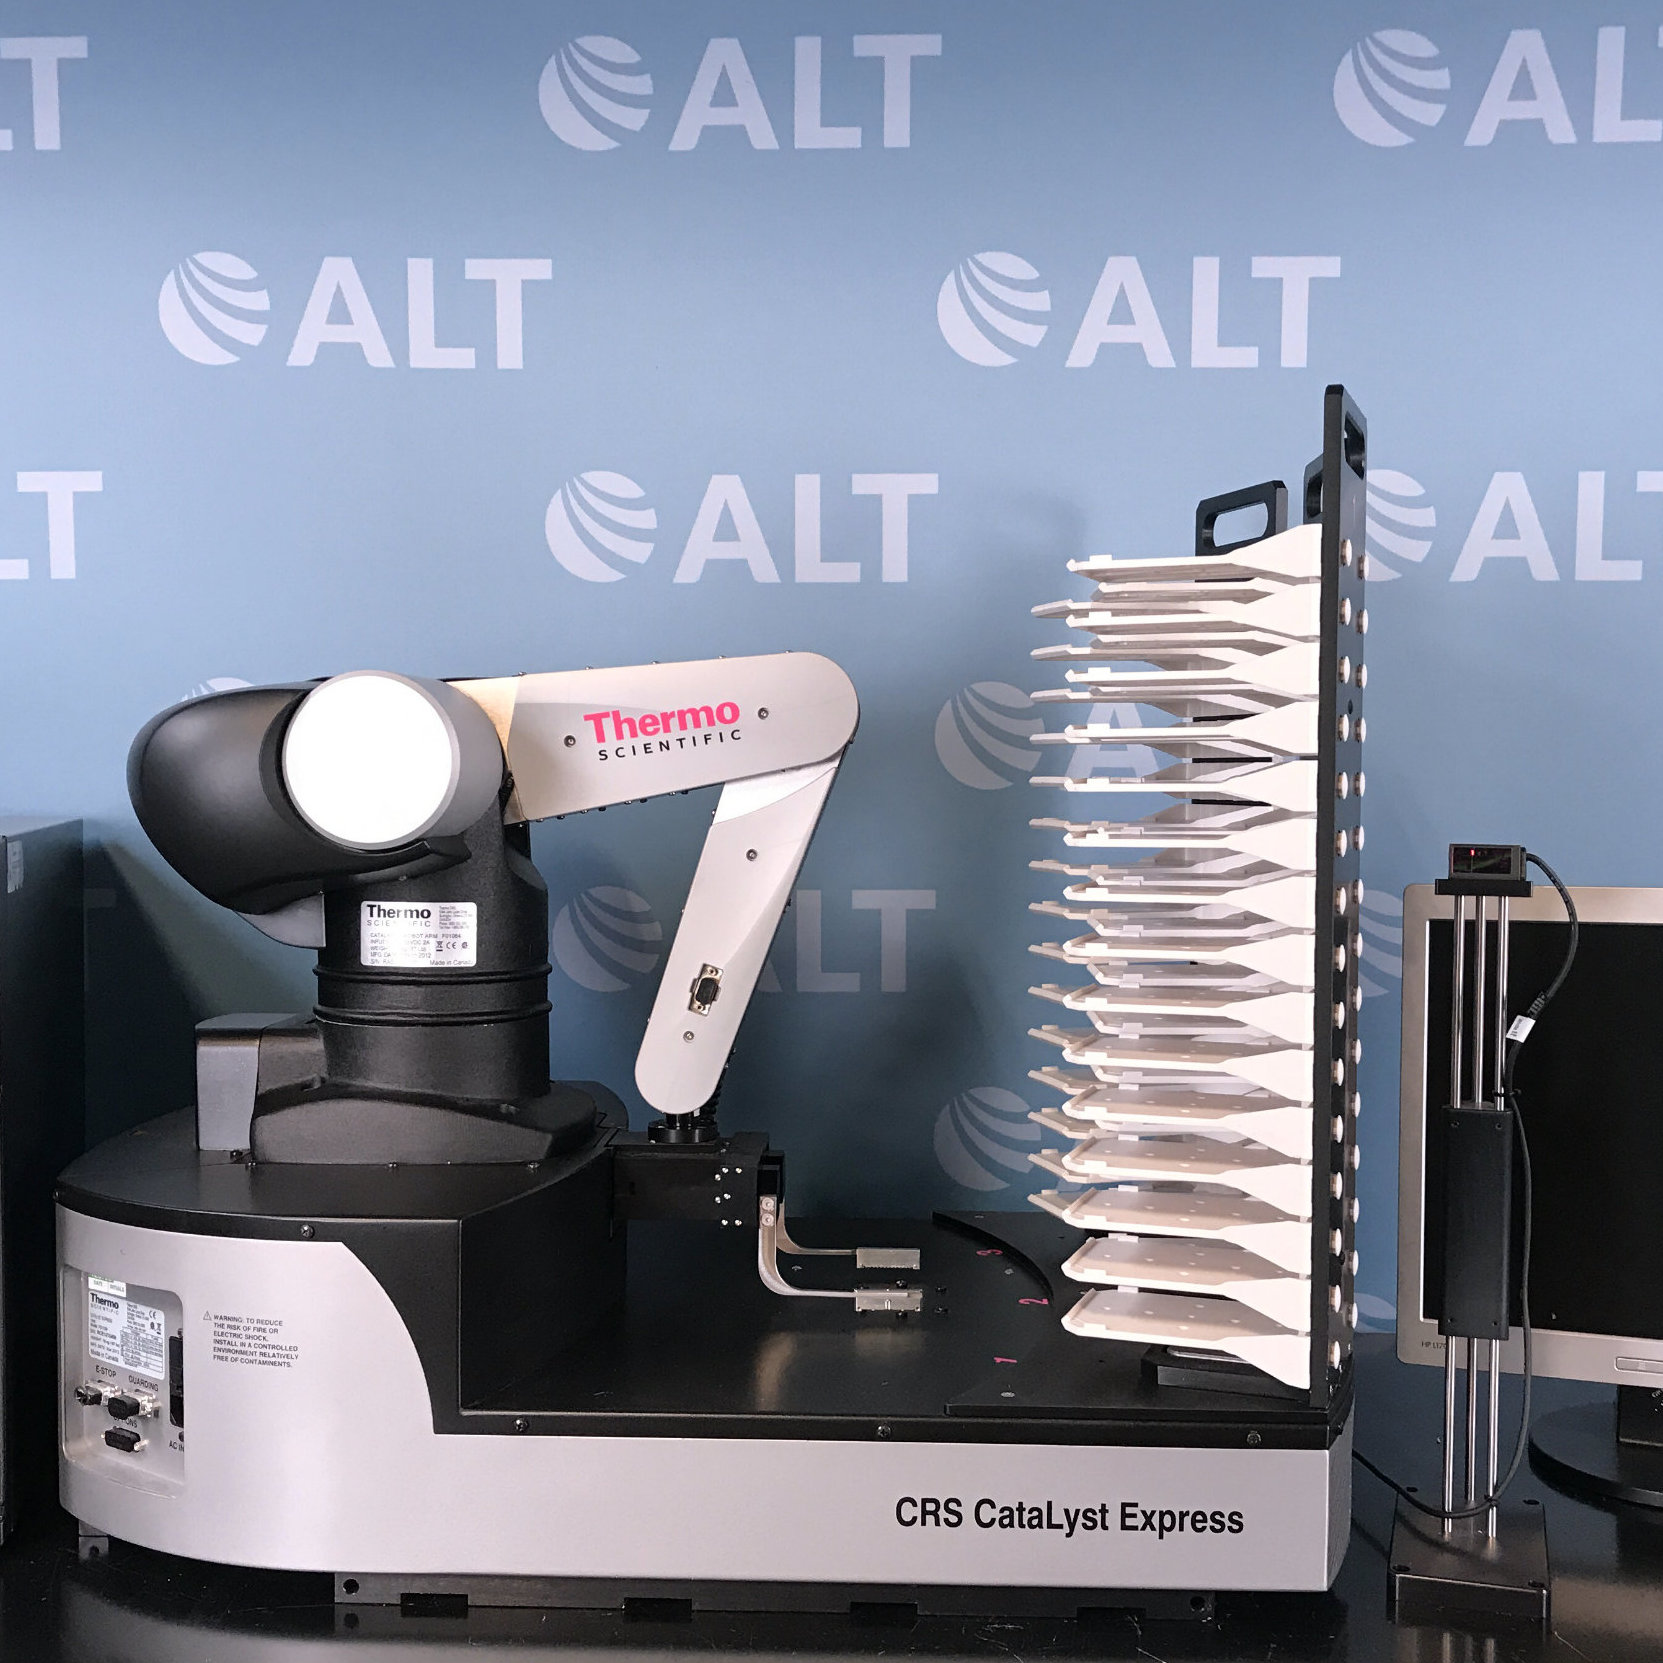 Thermo Scientific CRS CataLyst Express Laboratory Workstation Image